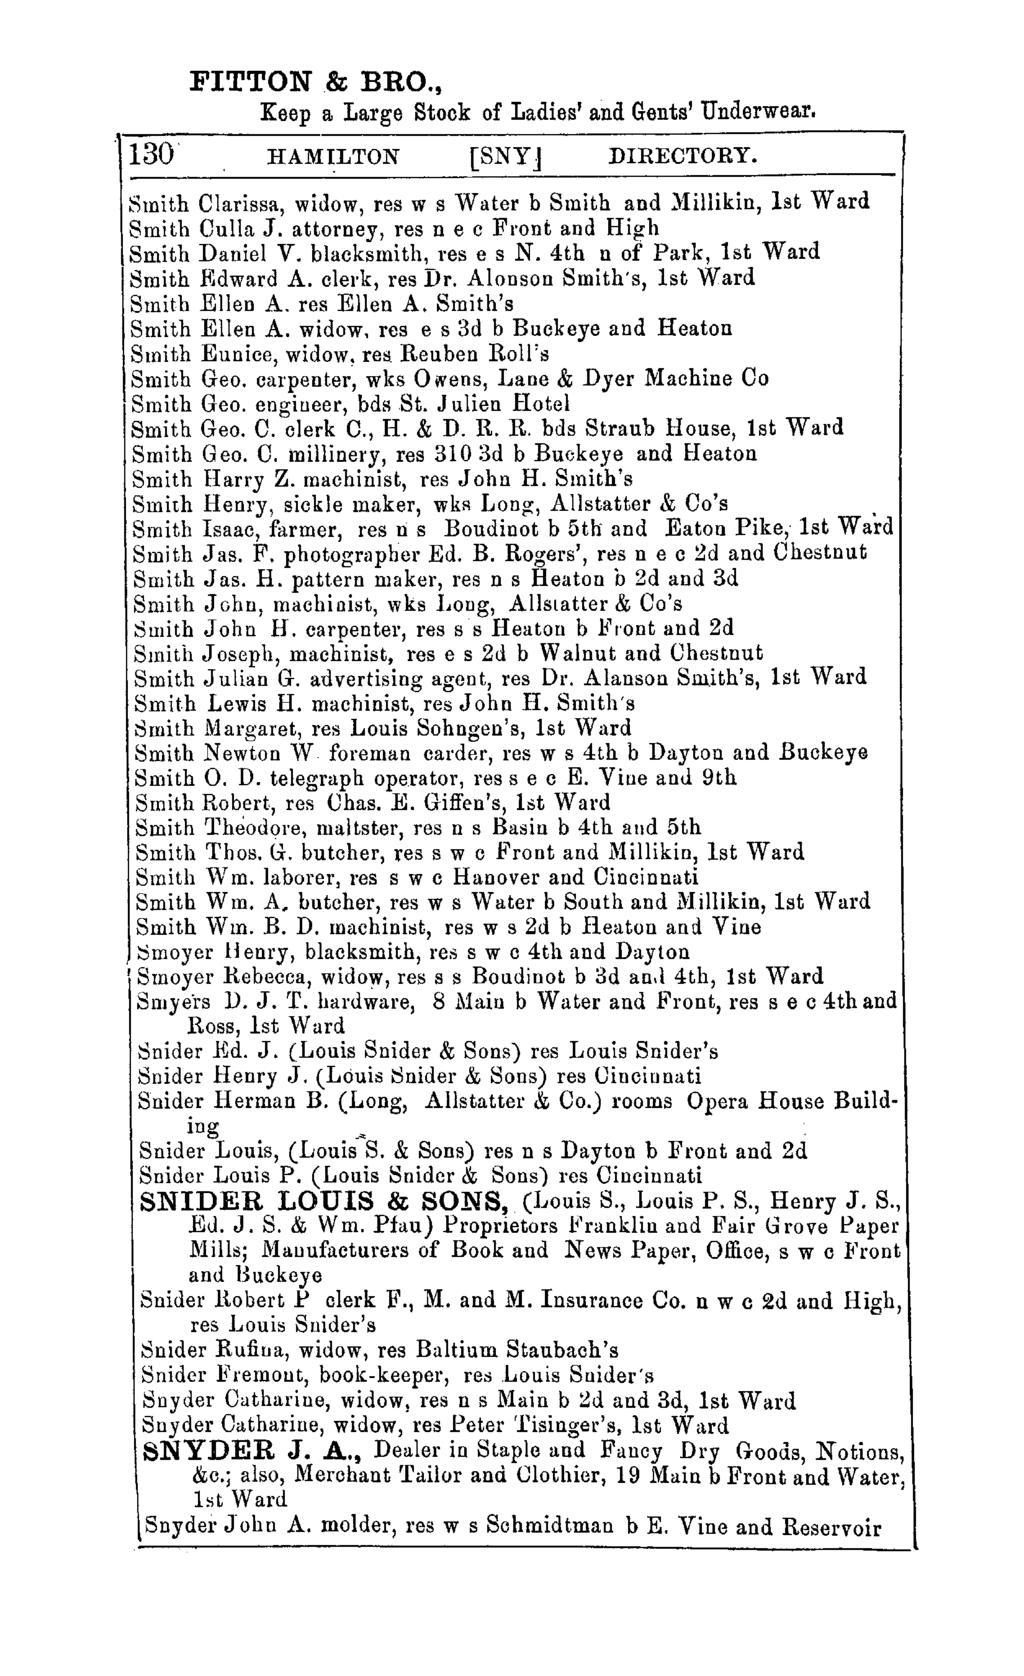 FITTON & BRO., Keep a Large Stock of Ladies' and Gents' Underwear. 130 HAMILTON [SNYJ DIRECTORY. Smith Clarissa, widow, res w s vvater b Smith and )lillikin, 1st Ward Smith Culla J.